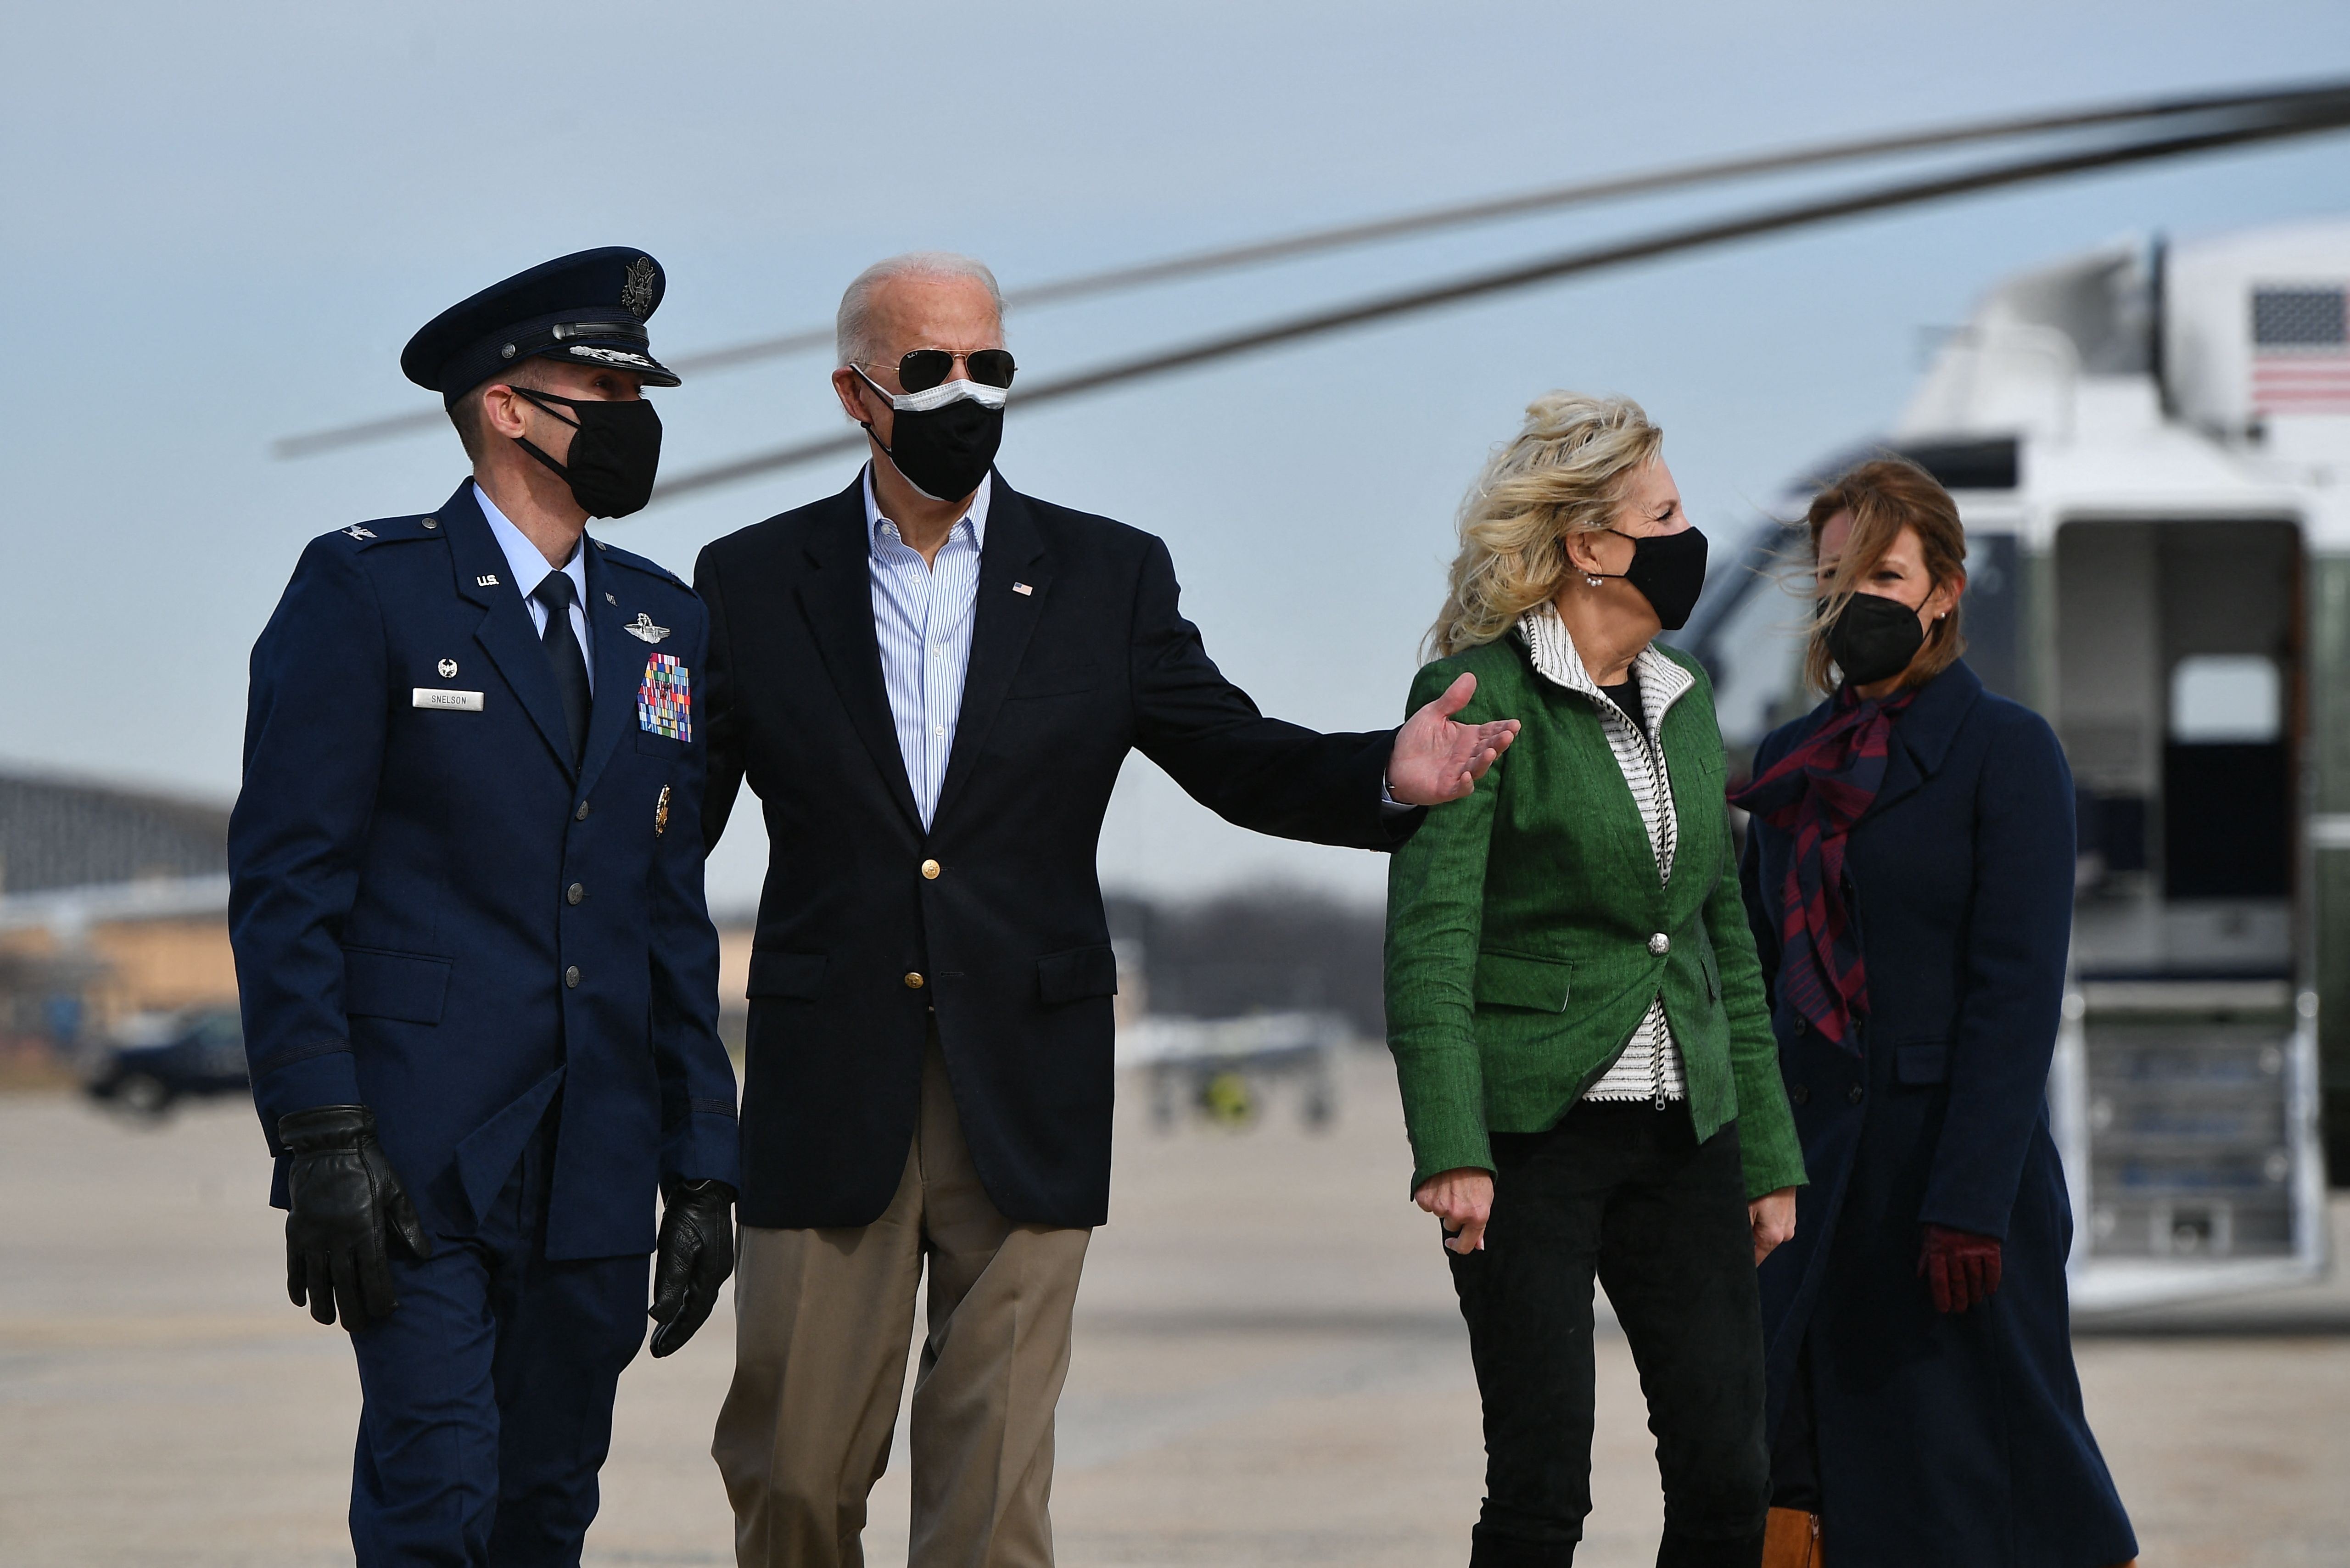 US President Joe Biden and First Lady Jill Biden are greeted by Colonel Stephen P. Snelson (L) and his wife, Catherine Snelson, as the Bidens arrive to board Air Force One at Joint Base Andrews in Maryland on February 26, 2021.